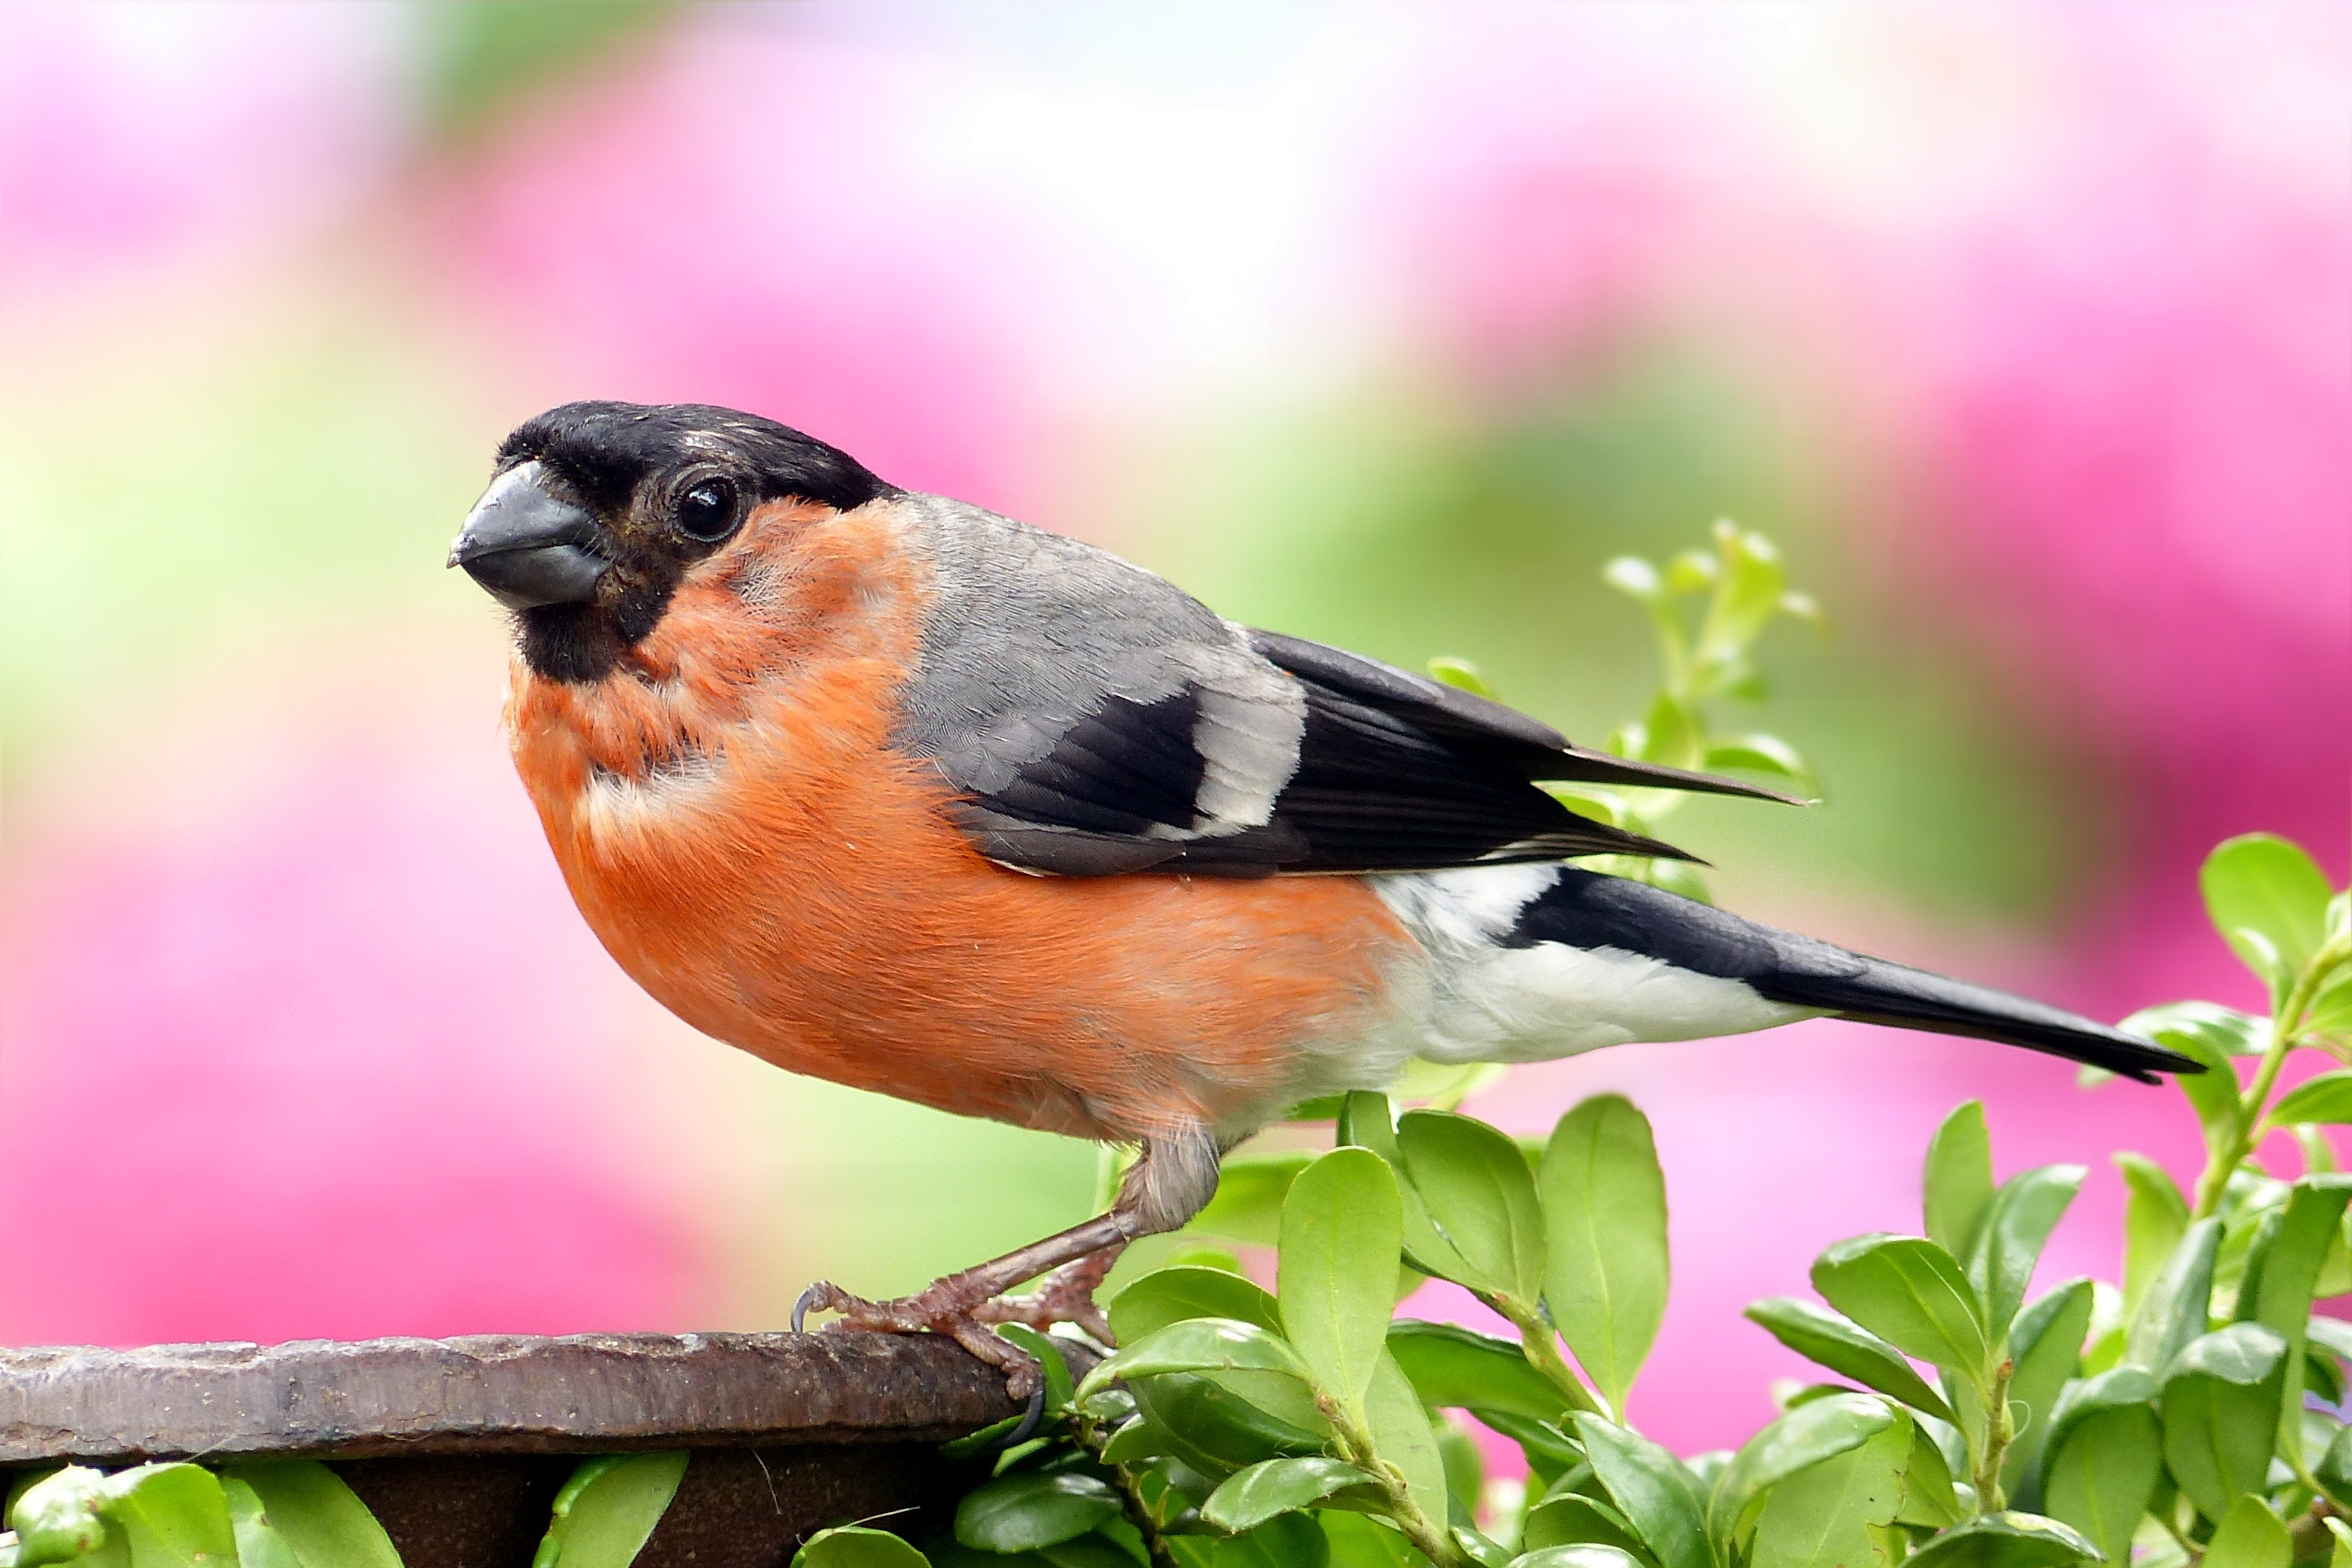 Orange and Grey Black Small Bick Bird, Perched, Plumage, Nature, Bullfinch, HQ Photo